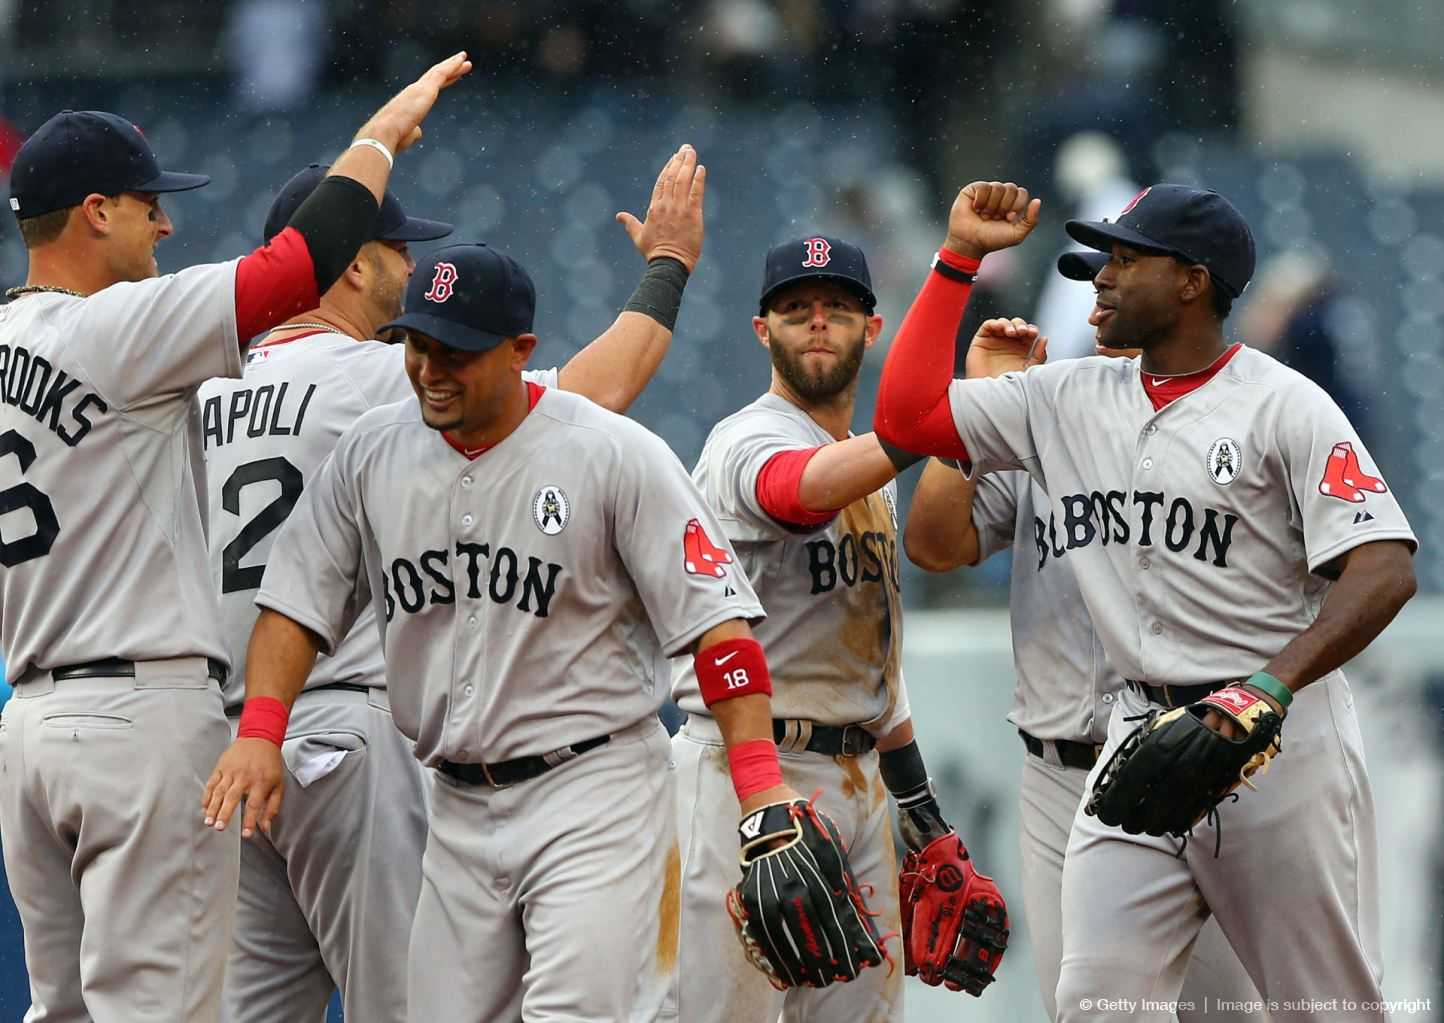 Red Sox beat Yankees in opening day 2013 at Yankee Stadium